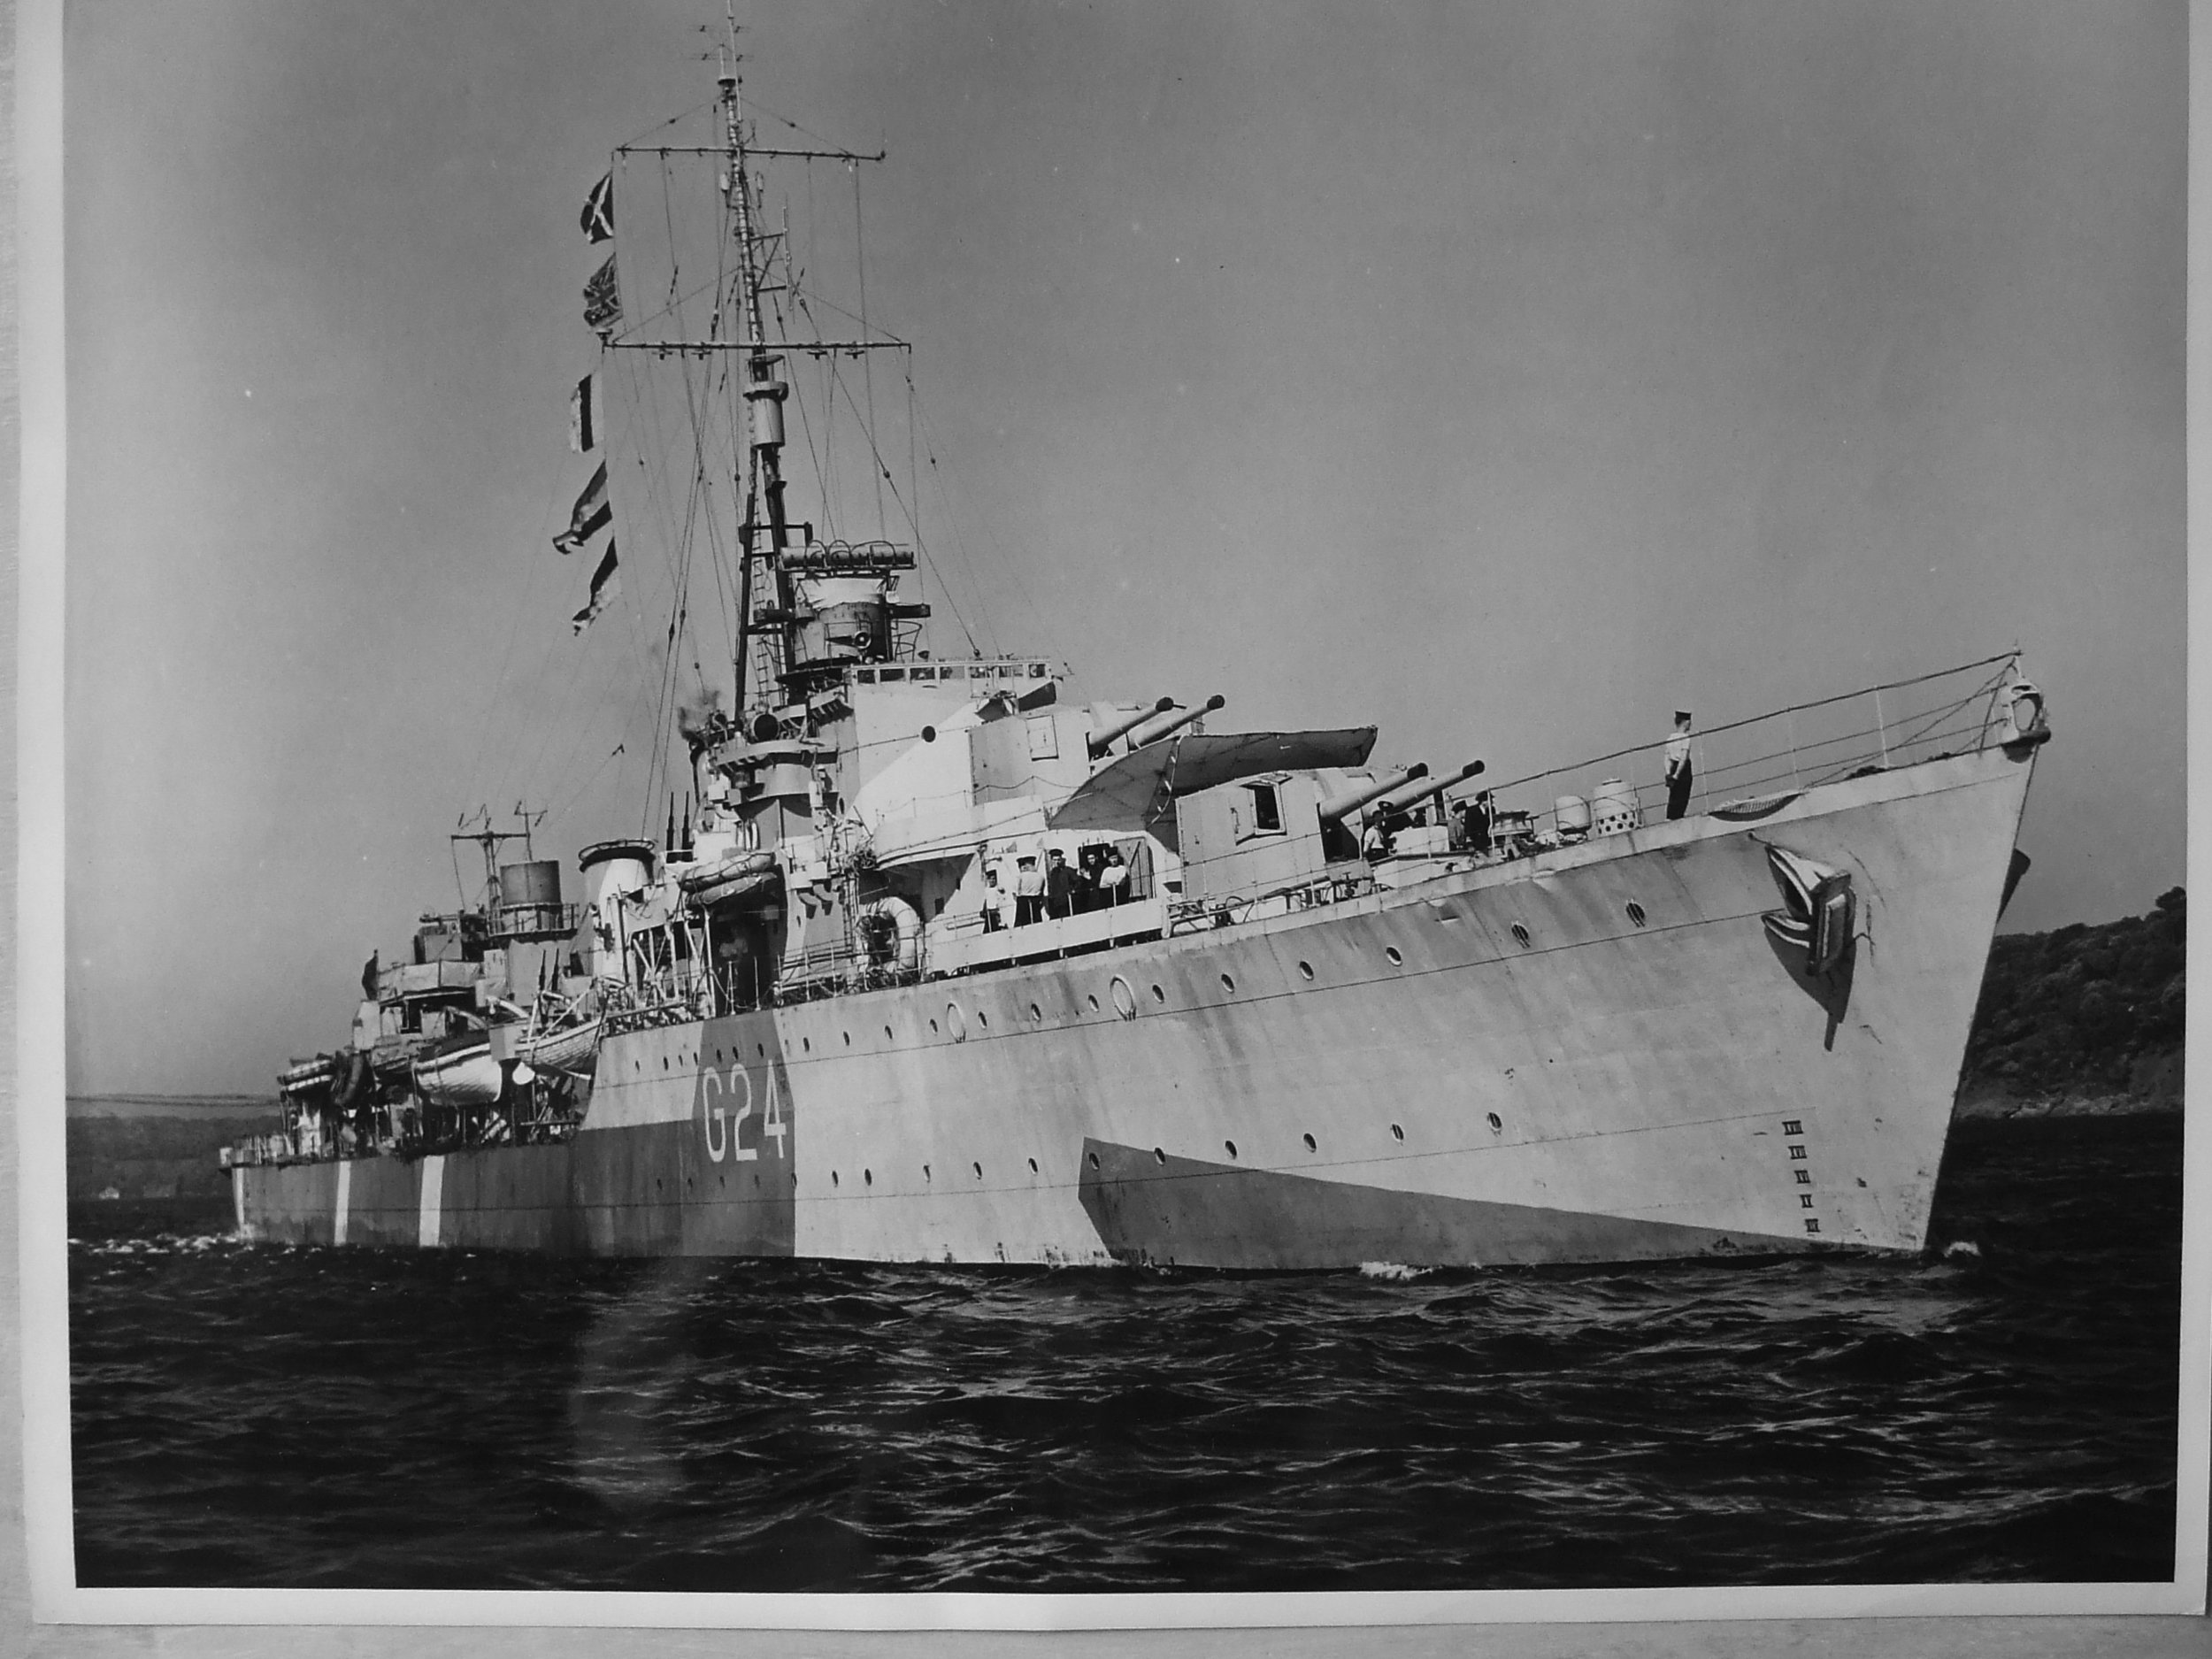 The Royal Canadian Navy's HMCS  Huron  (G24), in dazzle camouflage, sailing out to sea during the Second World War during one of her countless trans-Atlantic escorting runs. The Tribal-class destroyer, commissioned on July 28,1943, also served in the Pacific theatre during the Korean War under the new pennant number 216.